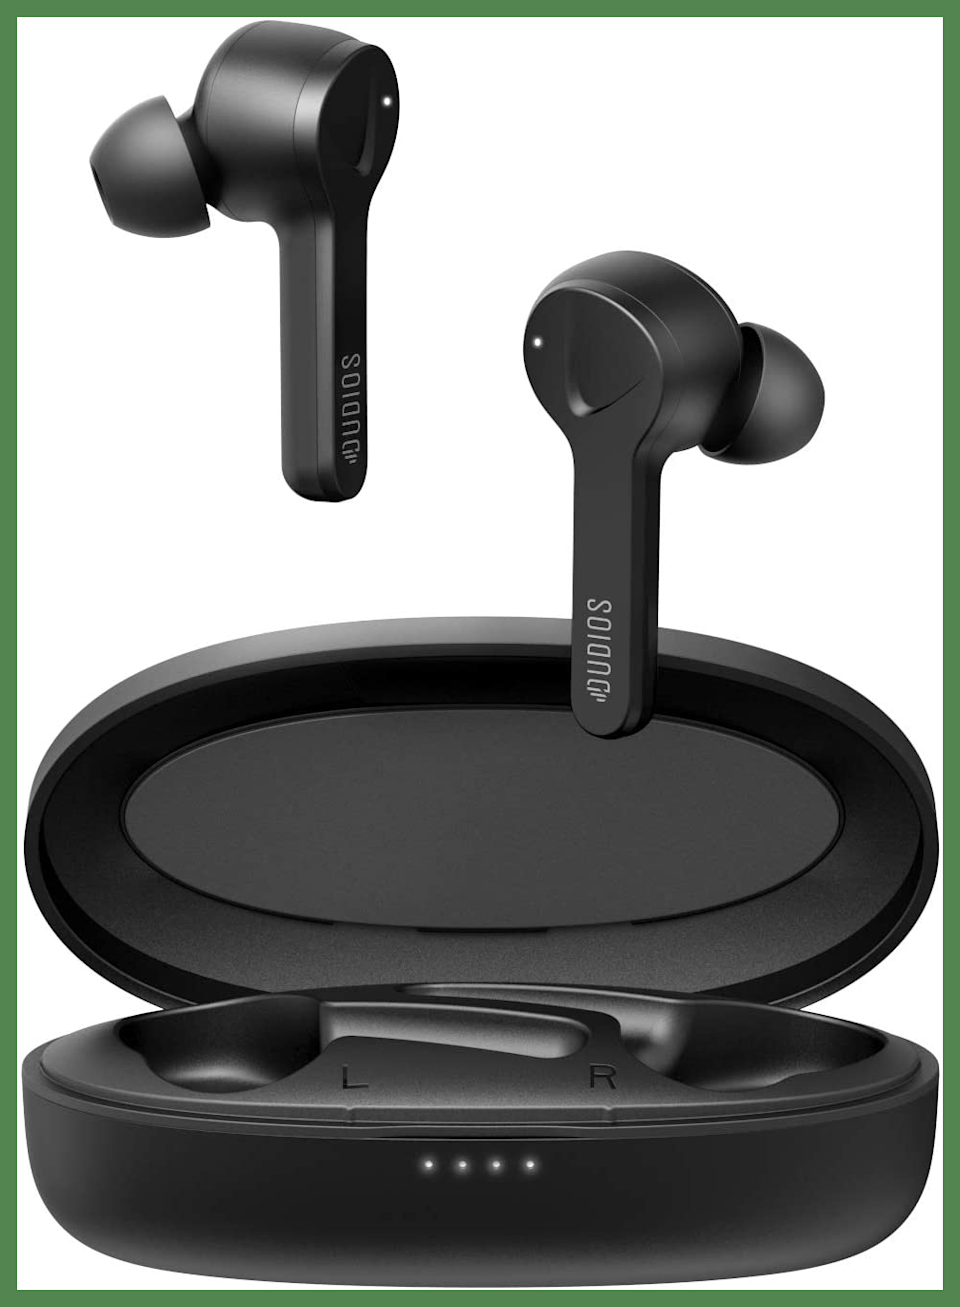 For Prime members only: Save $5 on these Dudios True Wireless Earbuds. (Photo: Amazon)